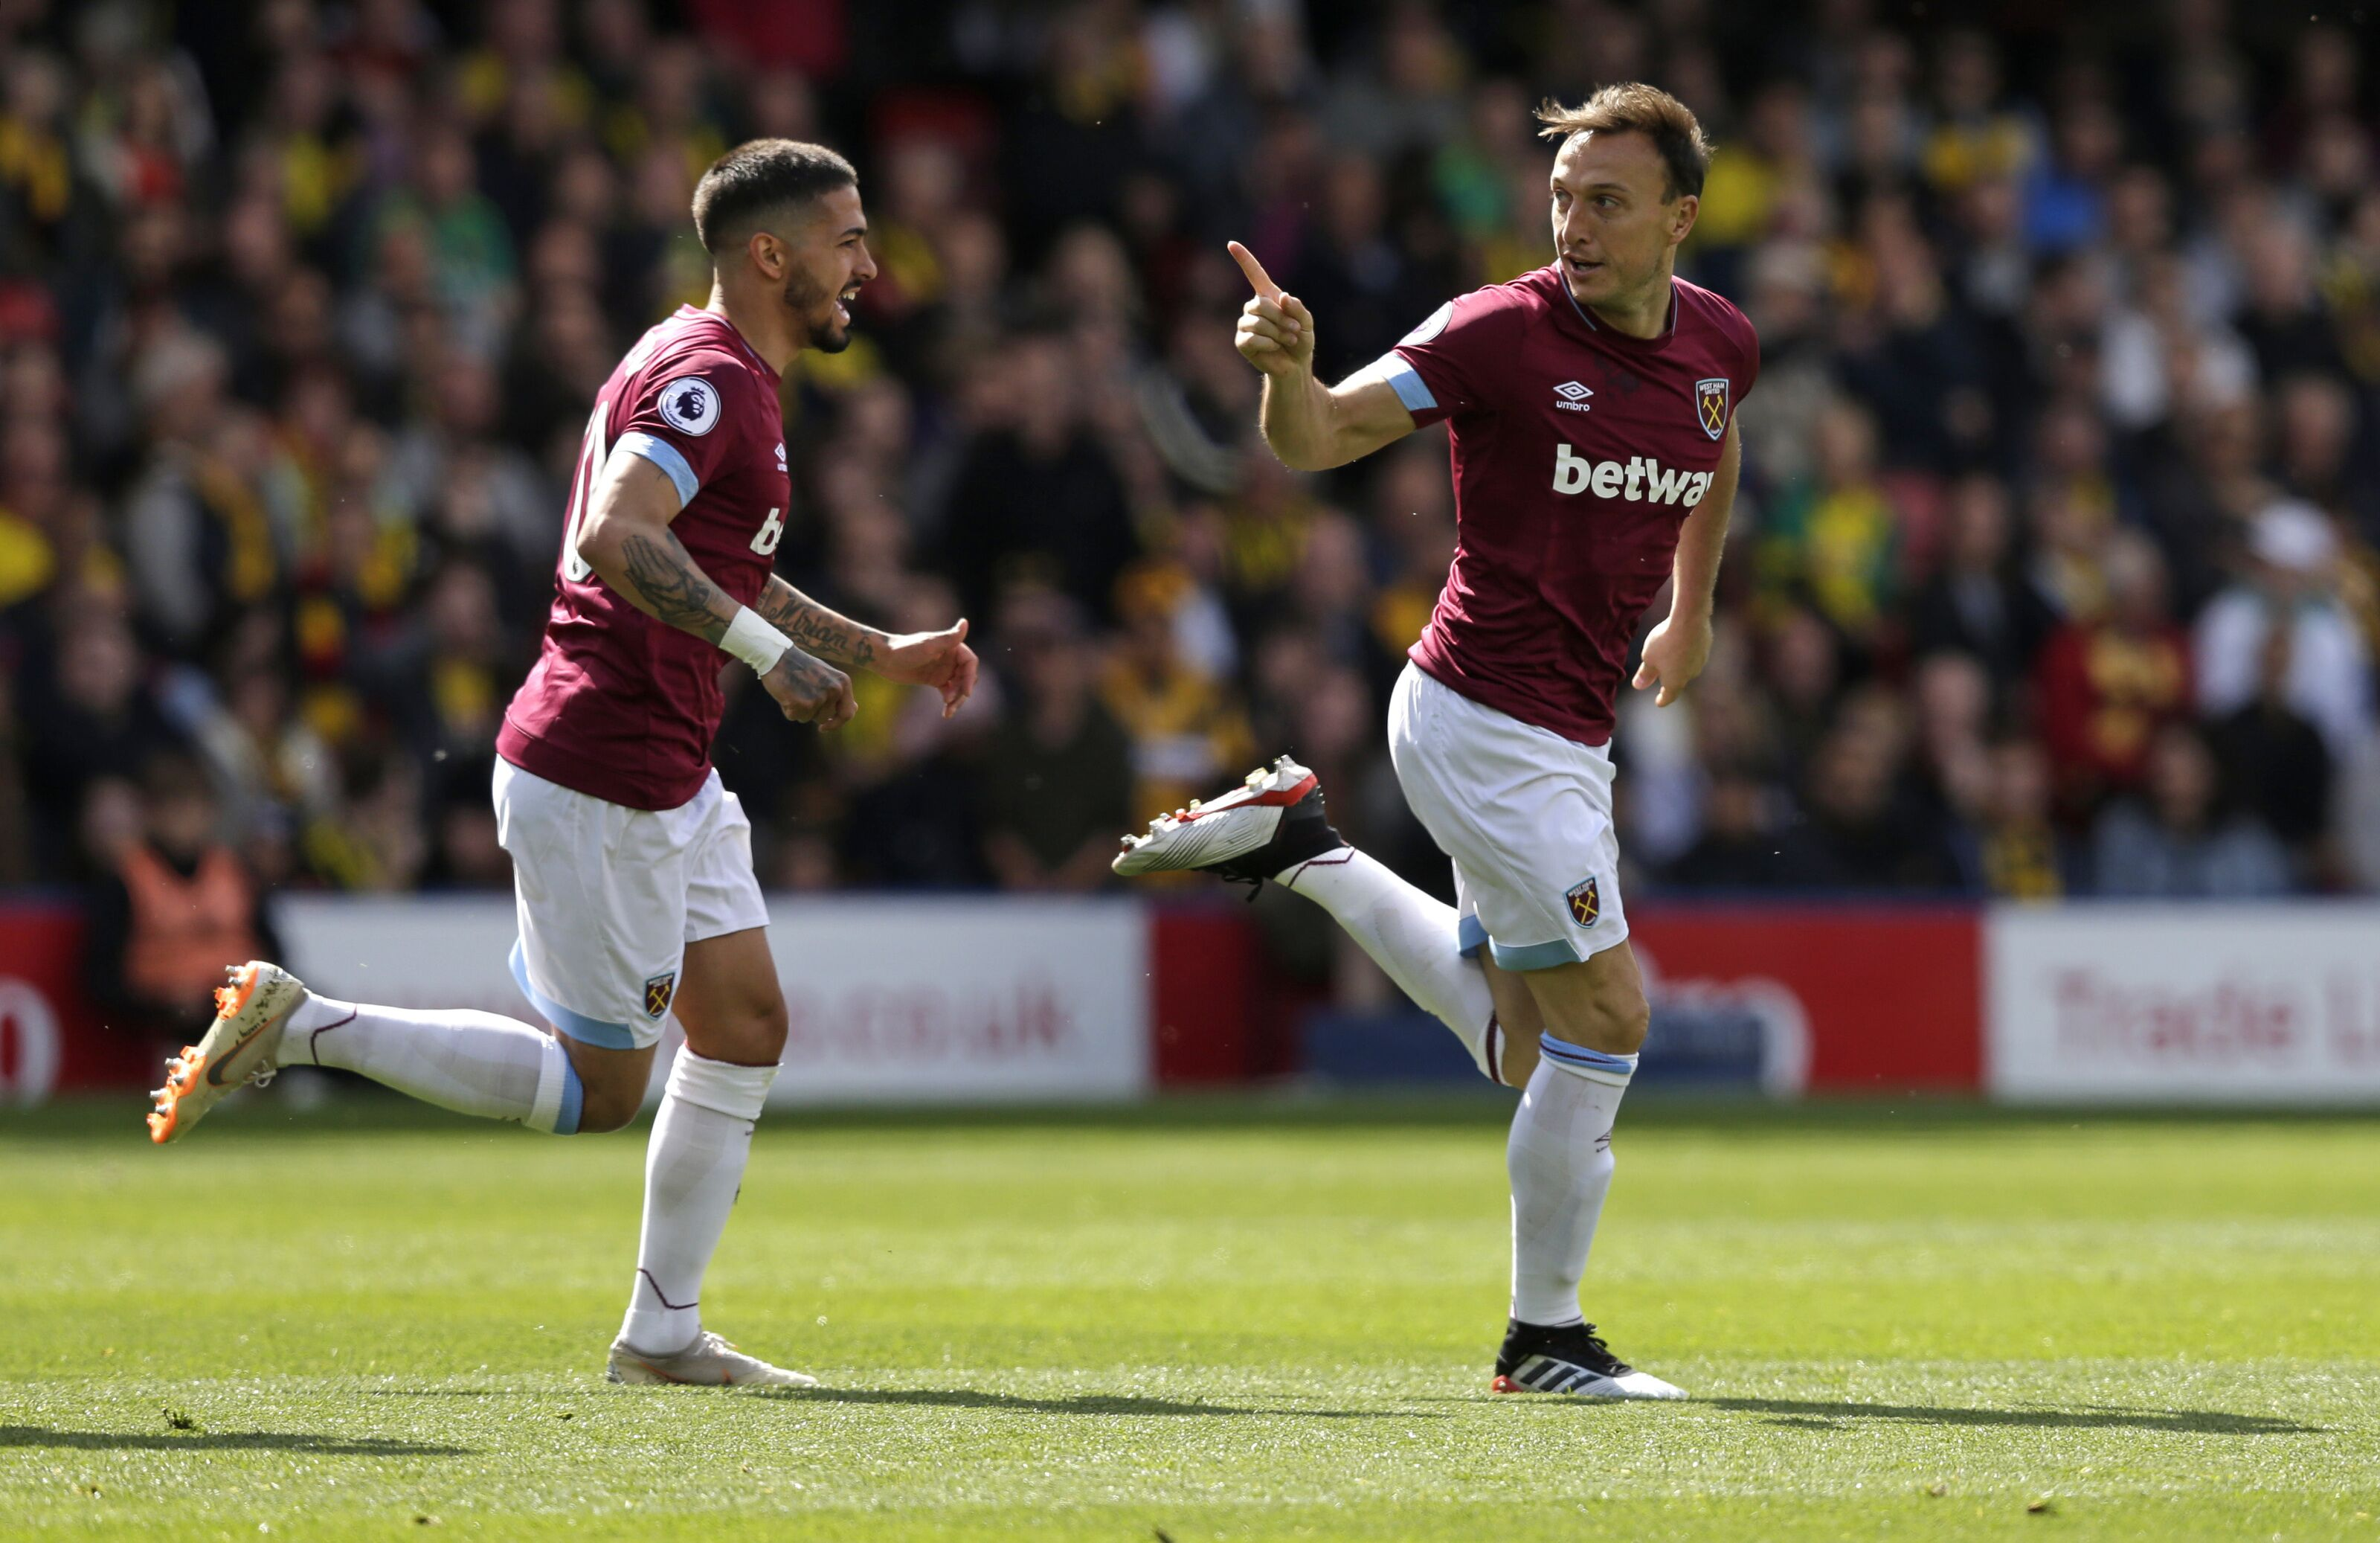 West Ham should look to the past against Watford to get there first win